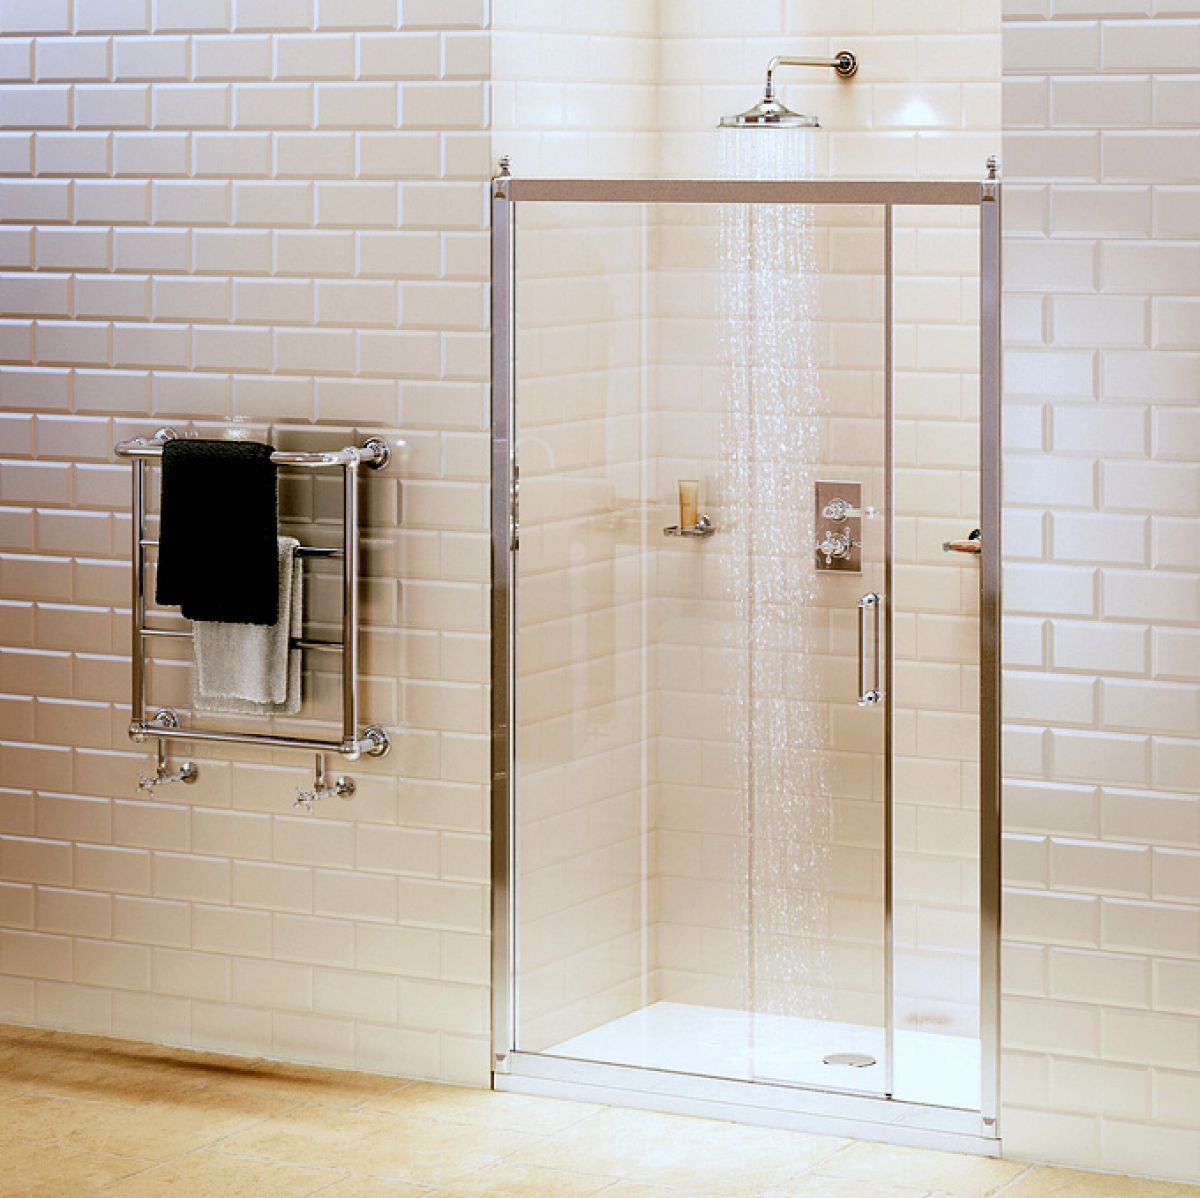 Pivot Shower Door Replacement Parts Uk - Best Showers Design